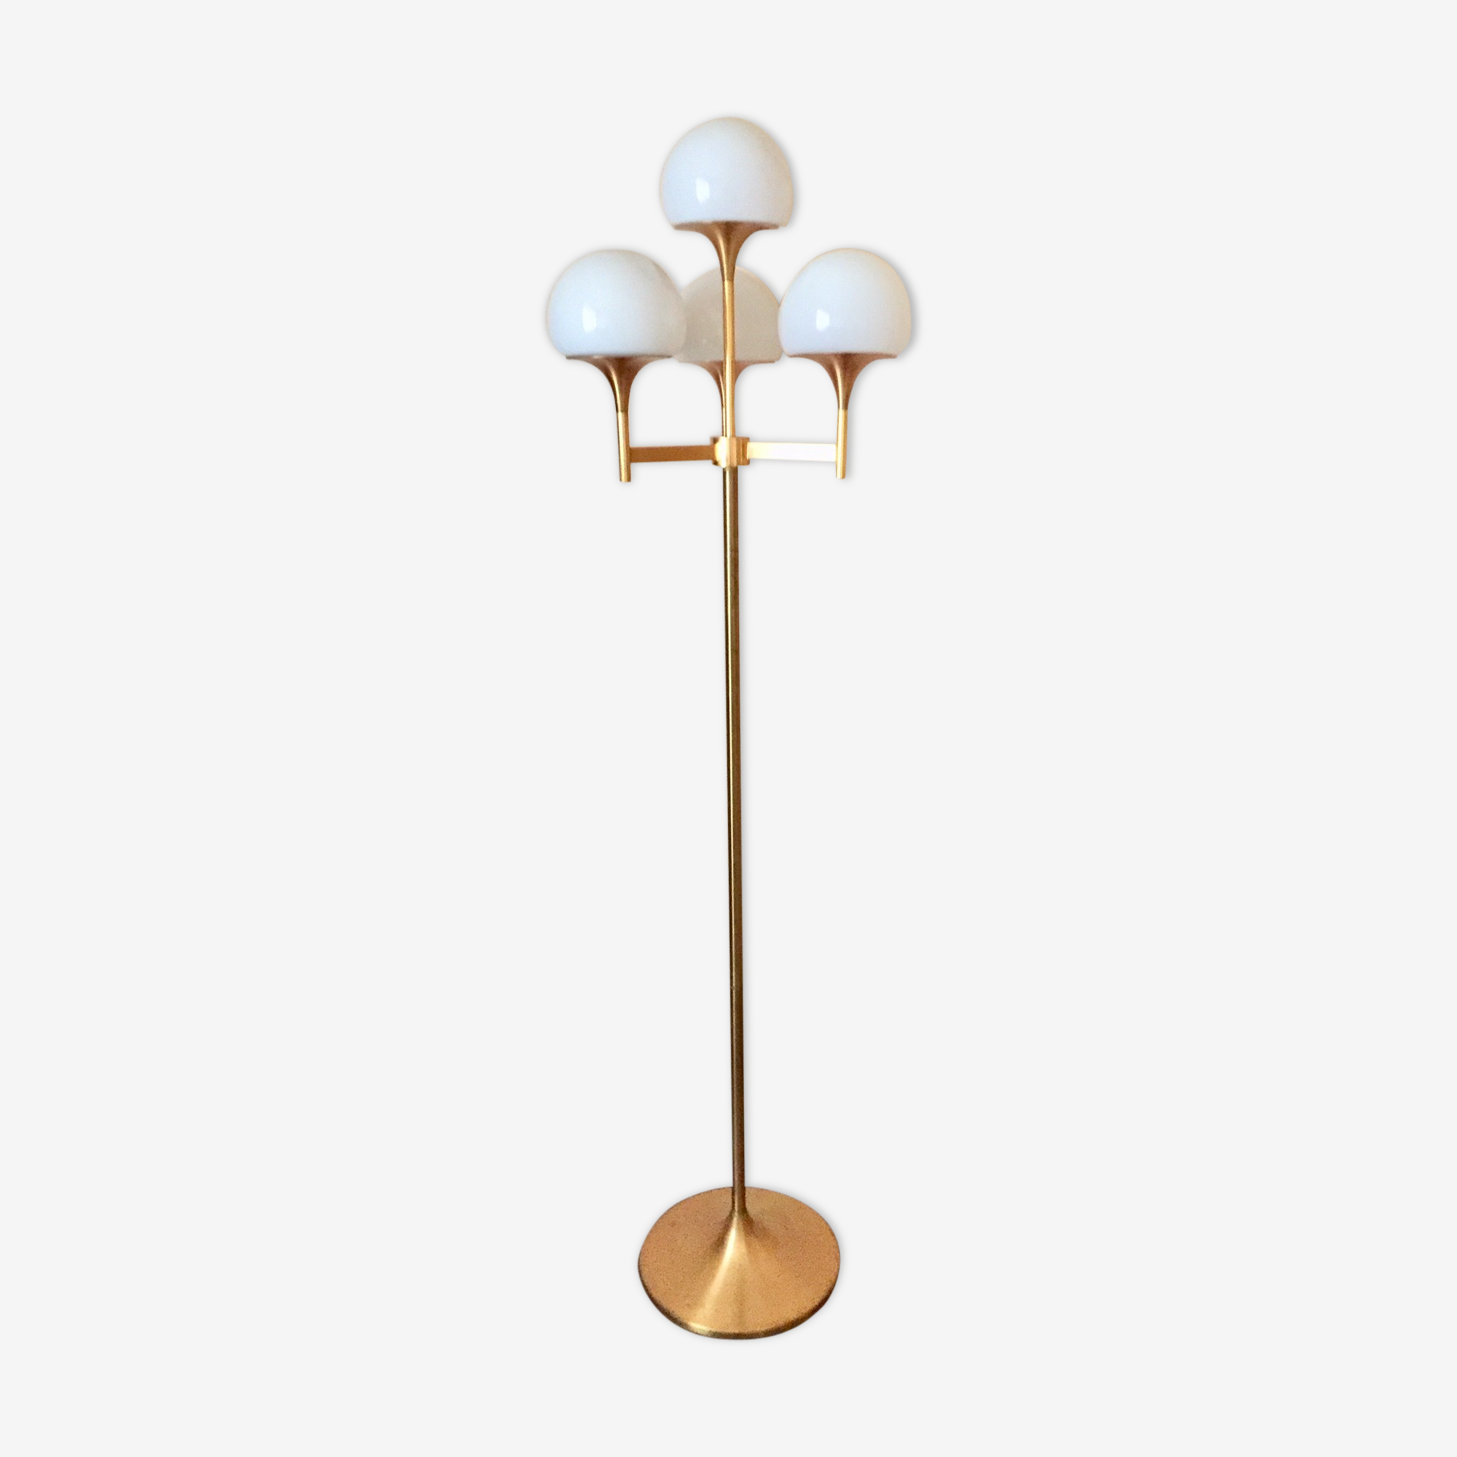 Golden lamppost design 70s Italian